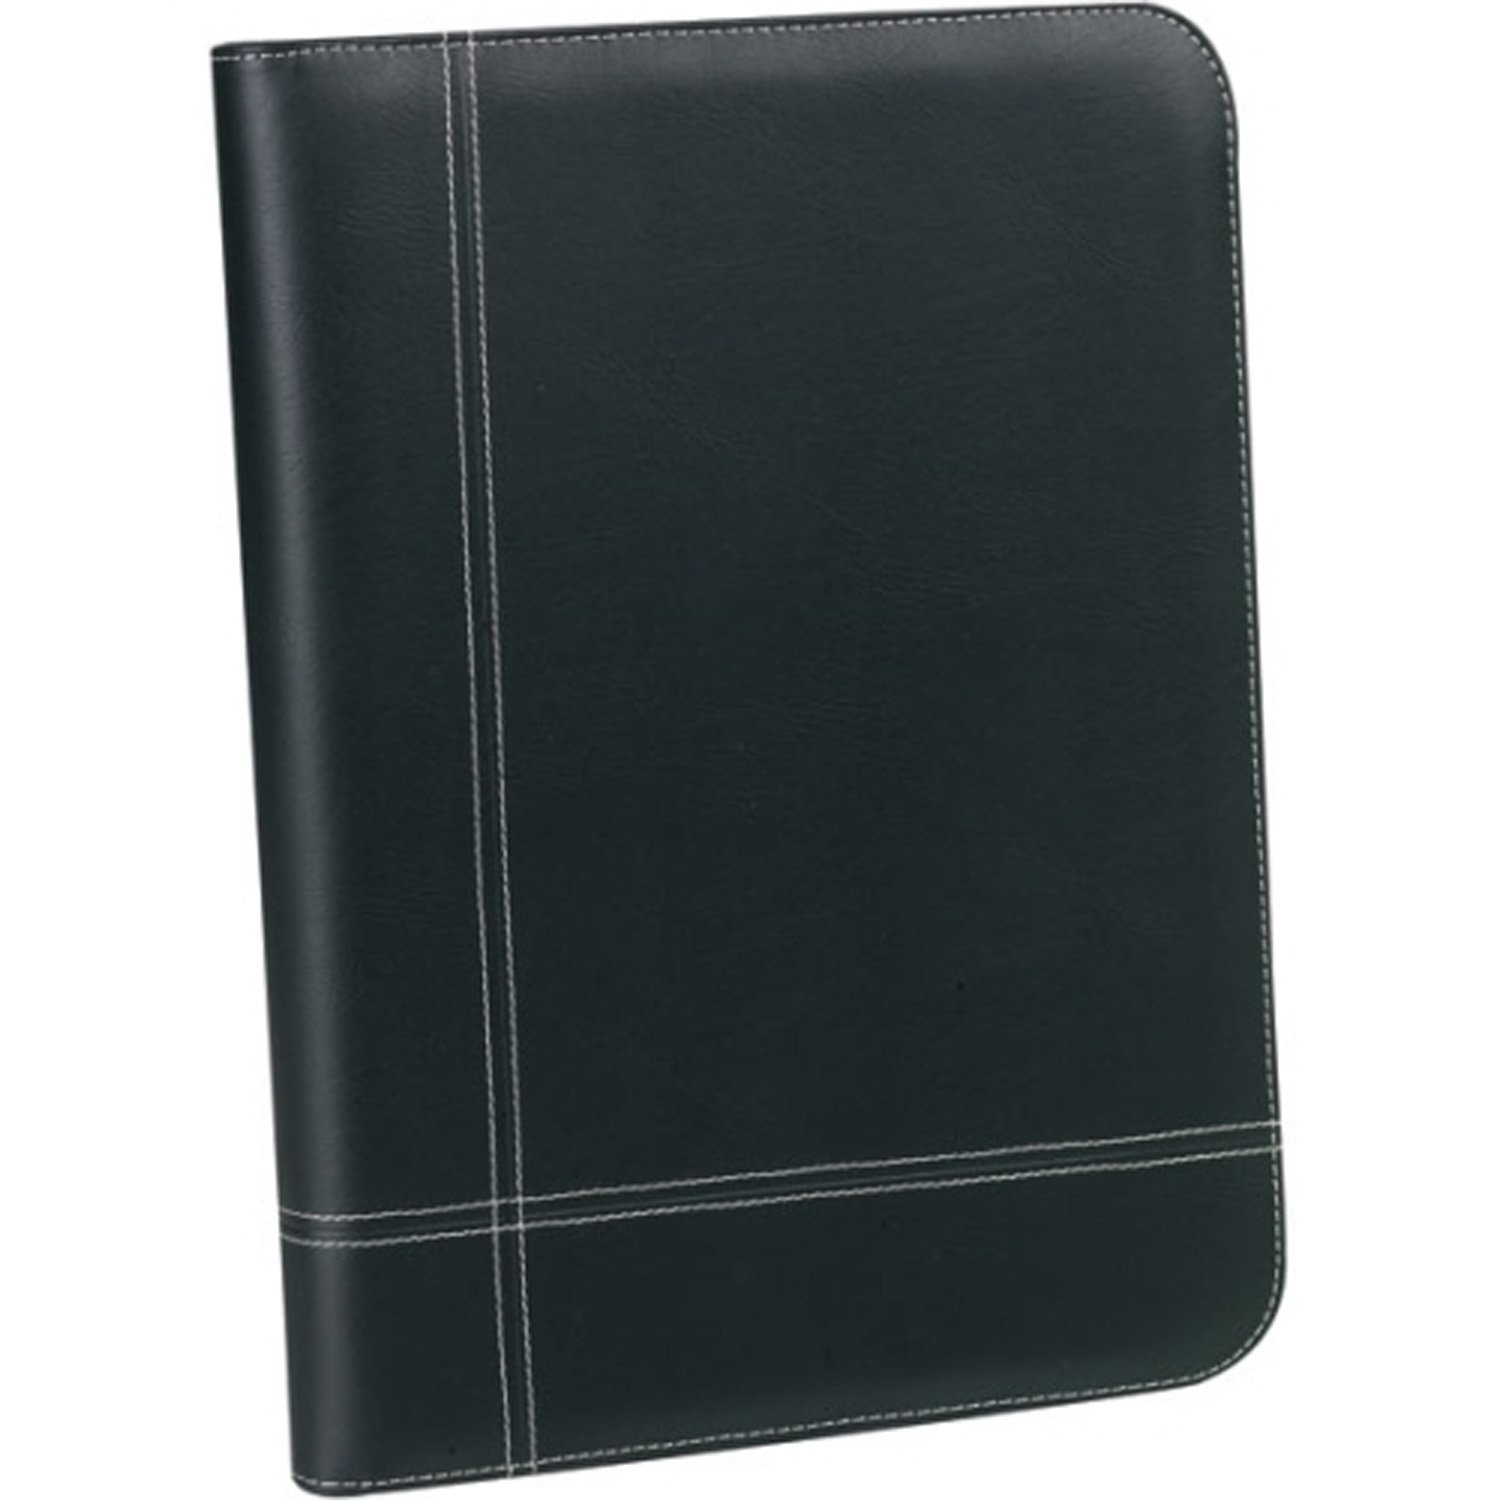 Portfolio, BuyAgain Black G-9 Soft Leatherette Professional Bussines Resume document Organizer Padfolio Portfolio with Zippered Closure, 3 Ring Binder & A Built In Solar Calculator.